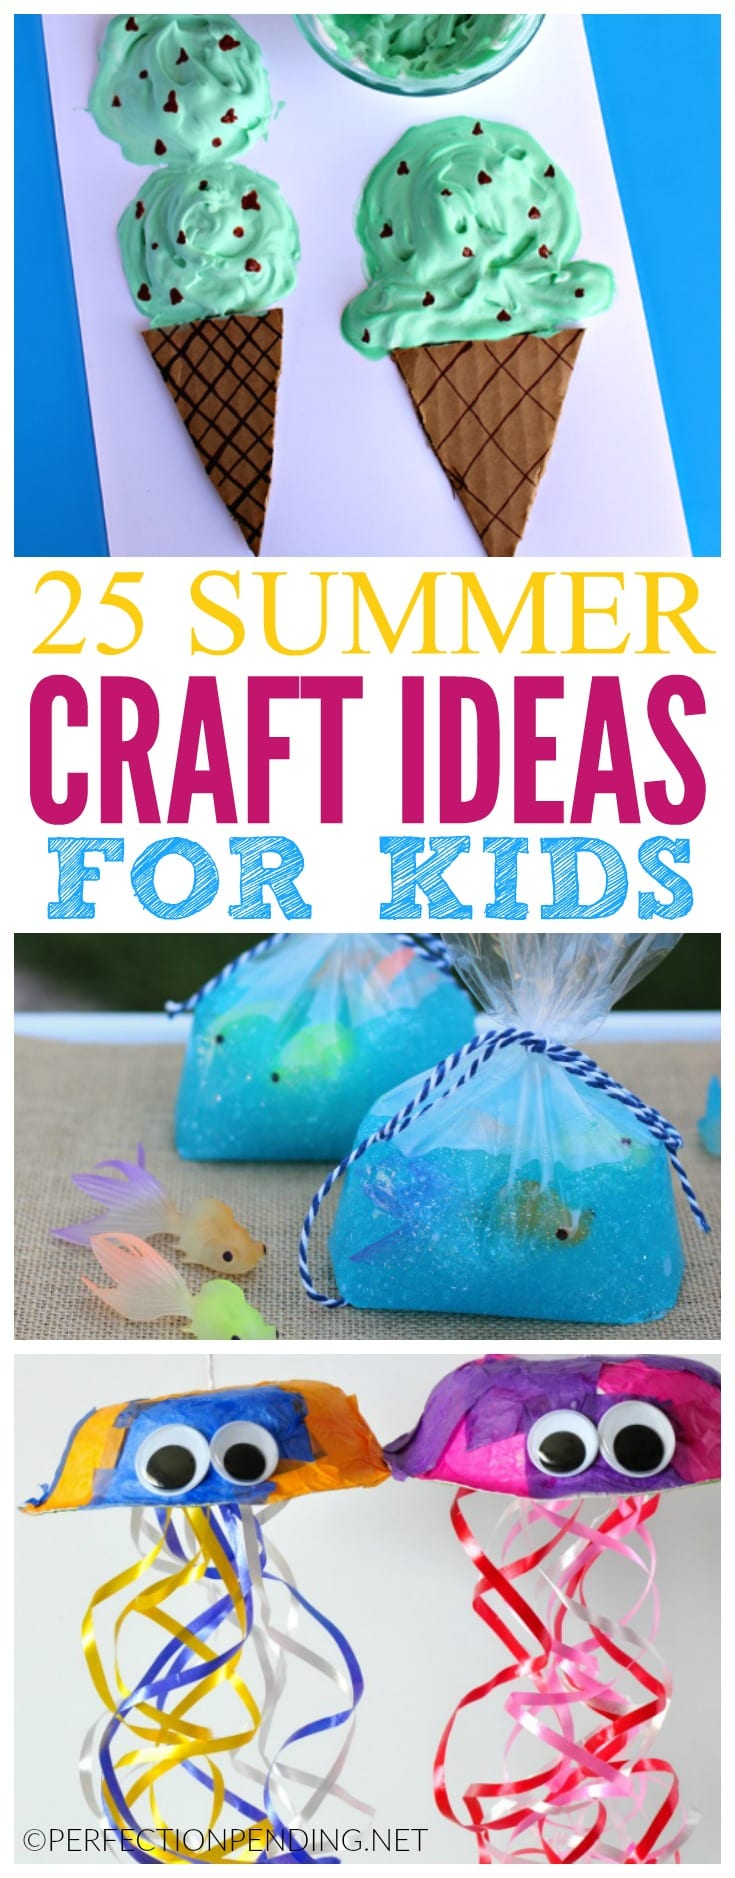 25 summer crafts for